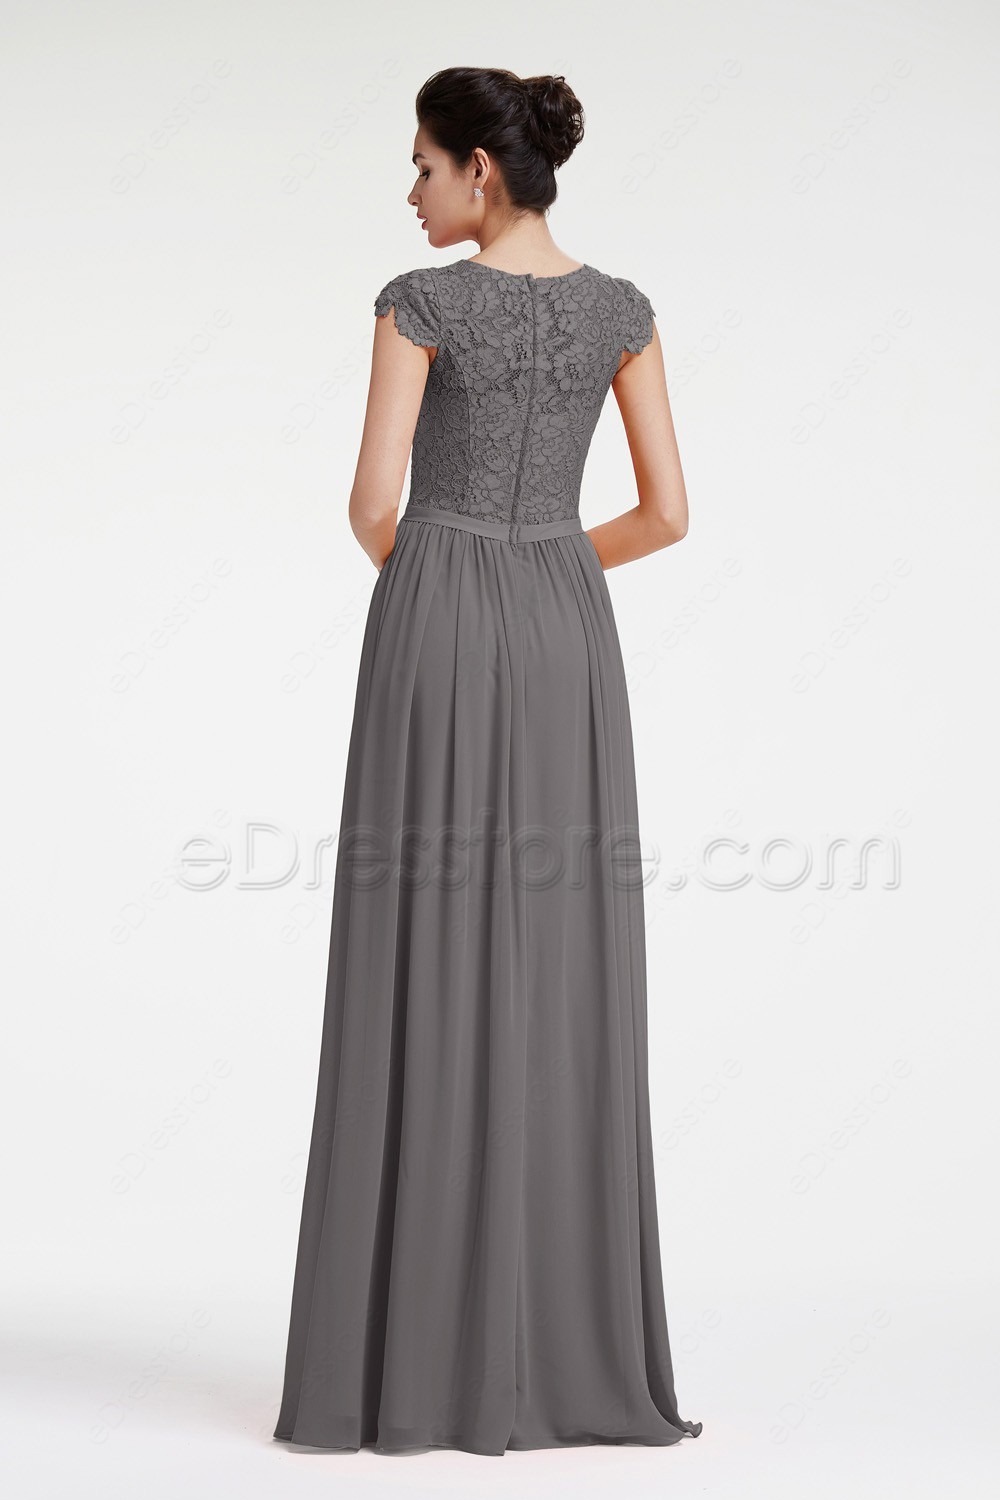 Modest charcoal grey bridesmaid dresses cap sleeves this is a made to order item in order to get a better fit lease take your measurements around bust waist and hip and choose your size from our size ombrellifo Image collections